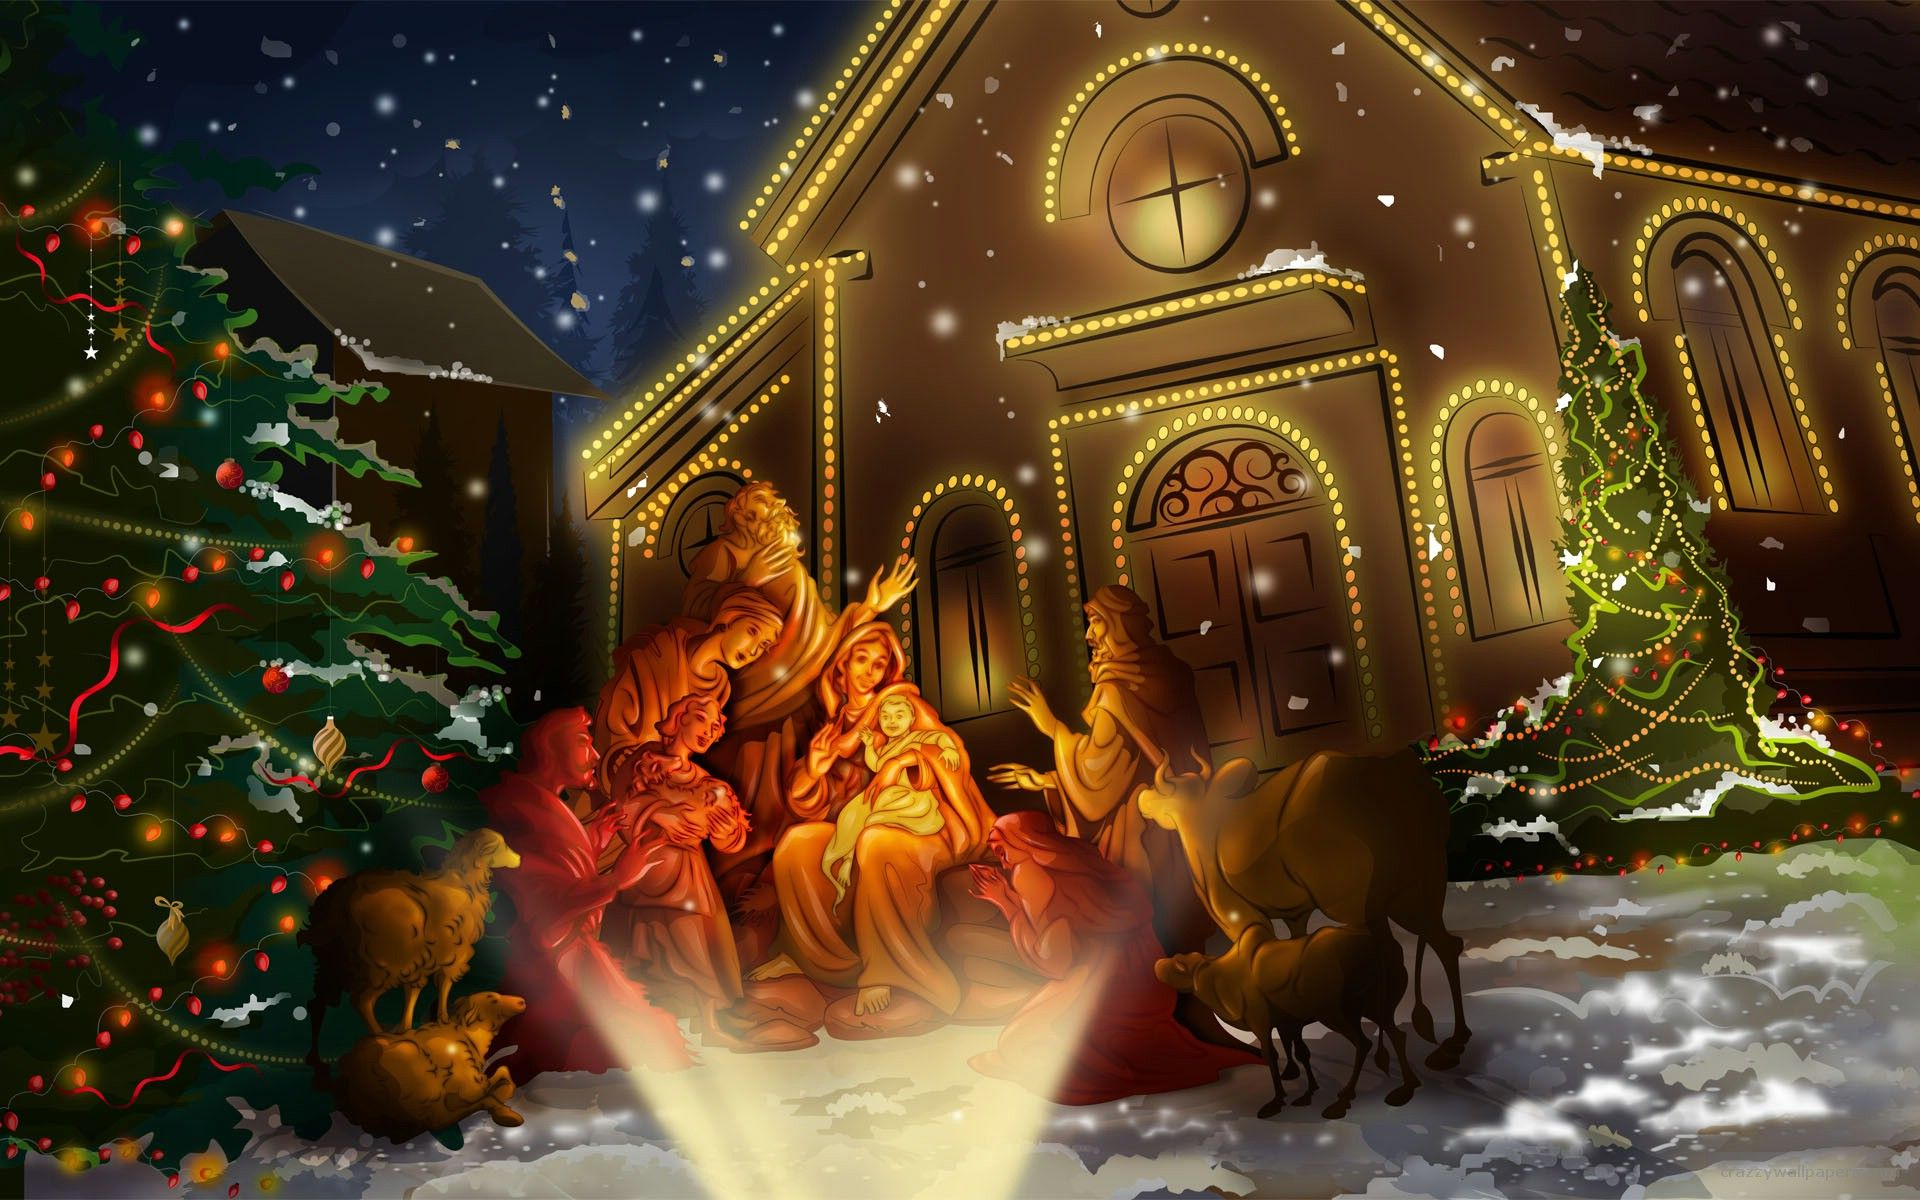 50 Widescreen Christmas Wallpapers To Have Logic Of Count Down Timer Dzinepress Christmas Wallpaper Free Christmas Jesus Christmas Wallpaper